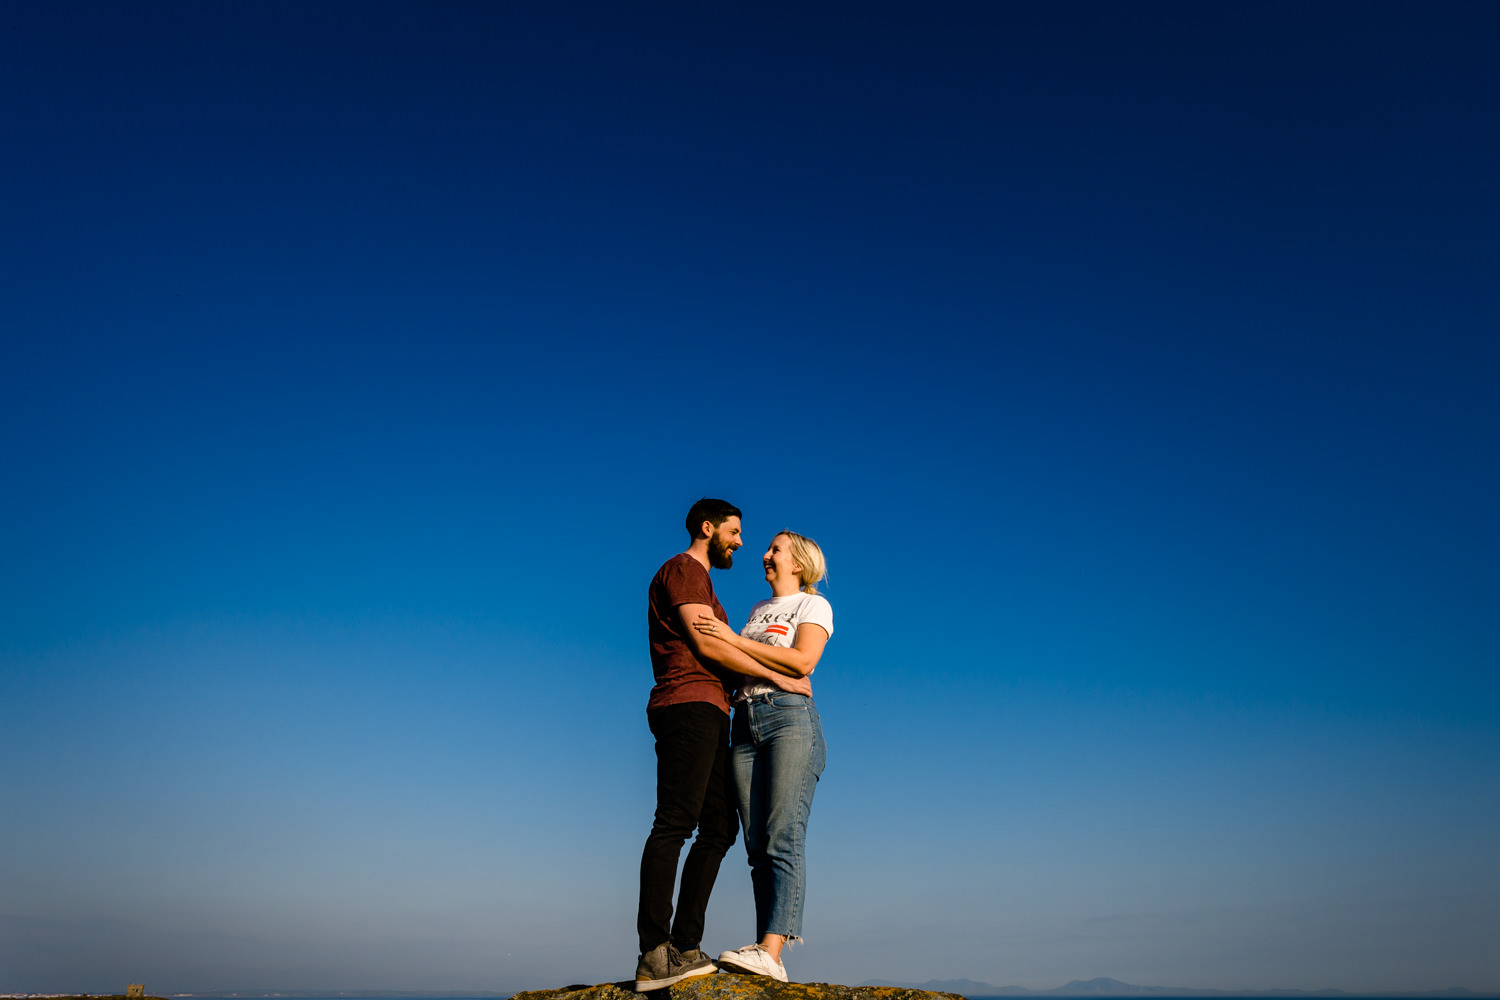 An engaged couple stood on a cliff in front of a blue sunny sky in Anglesey, Wales. By wedding photographers Zoe & Tom of About Today Photography.